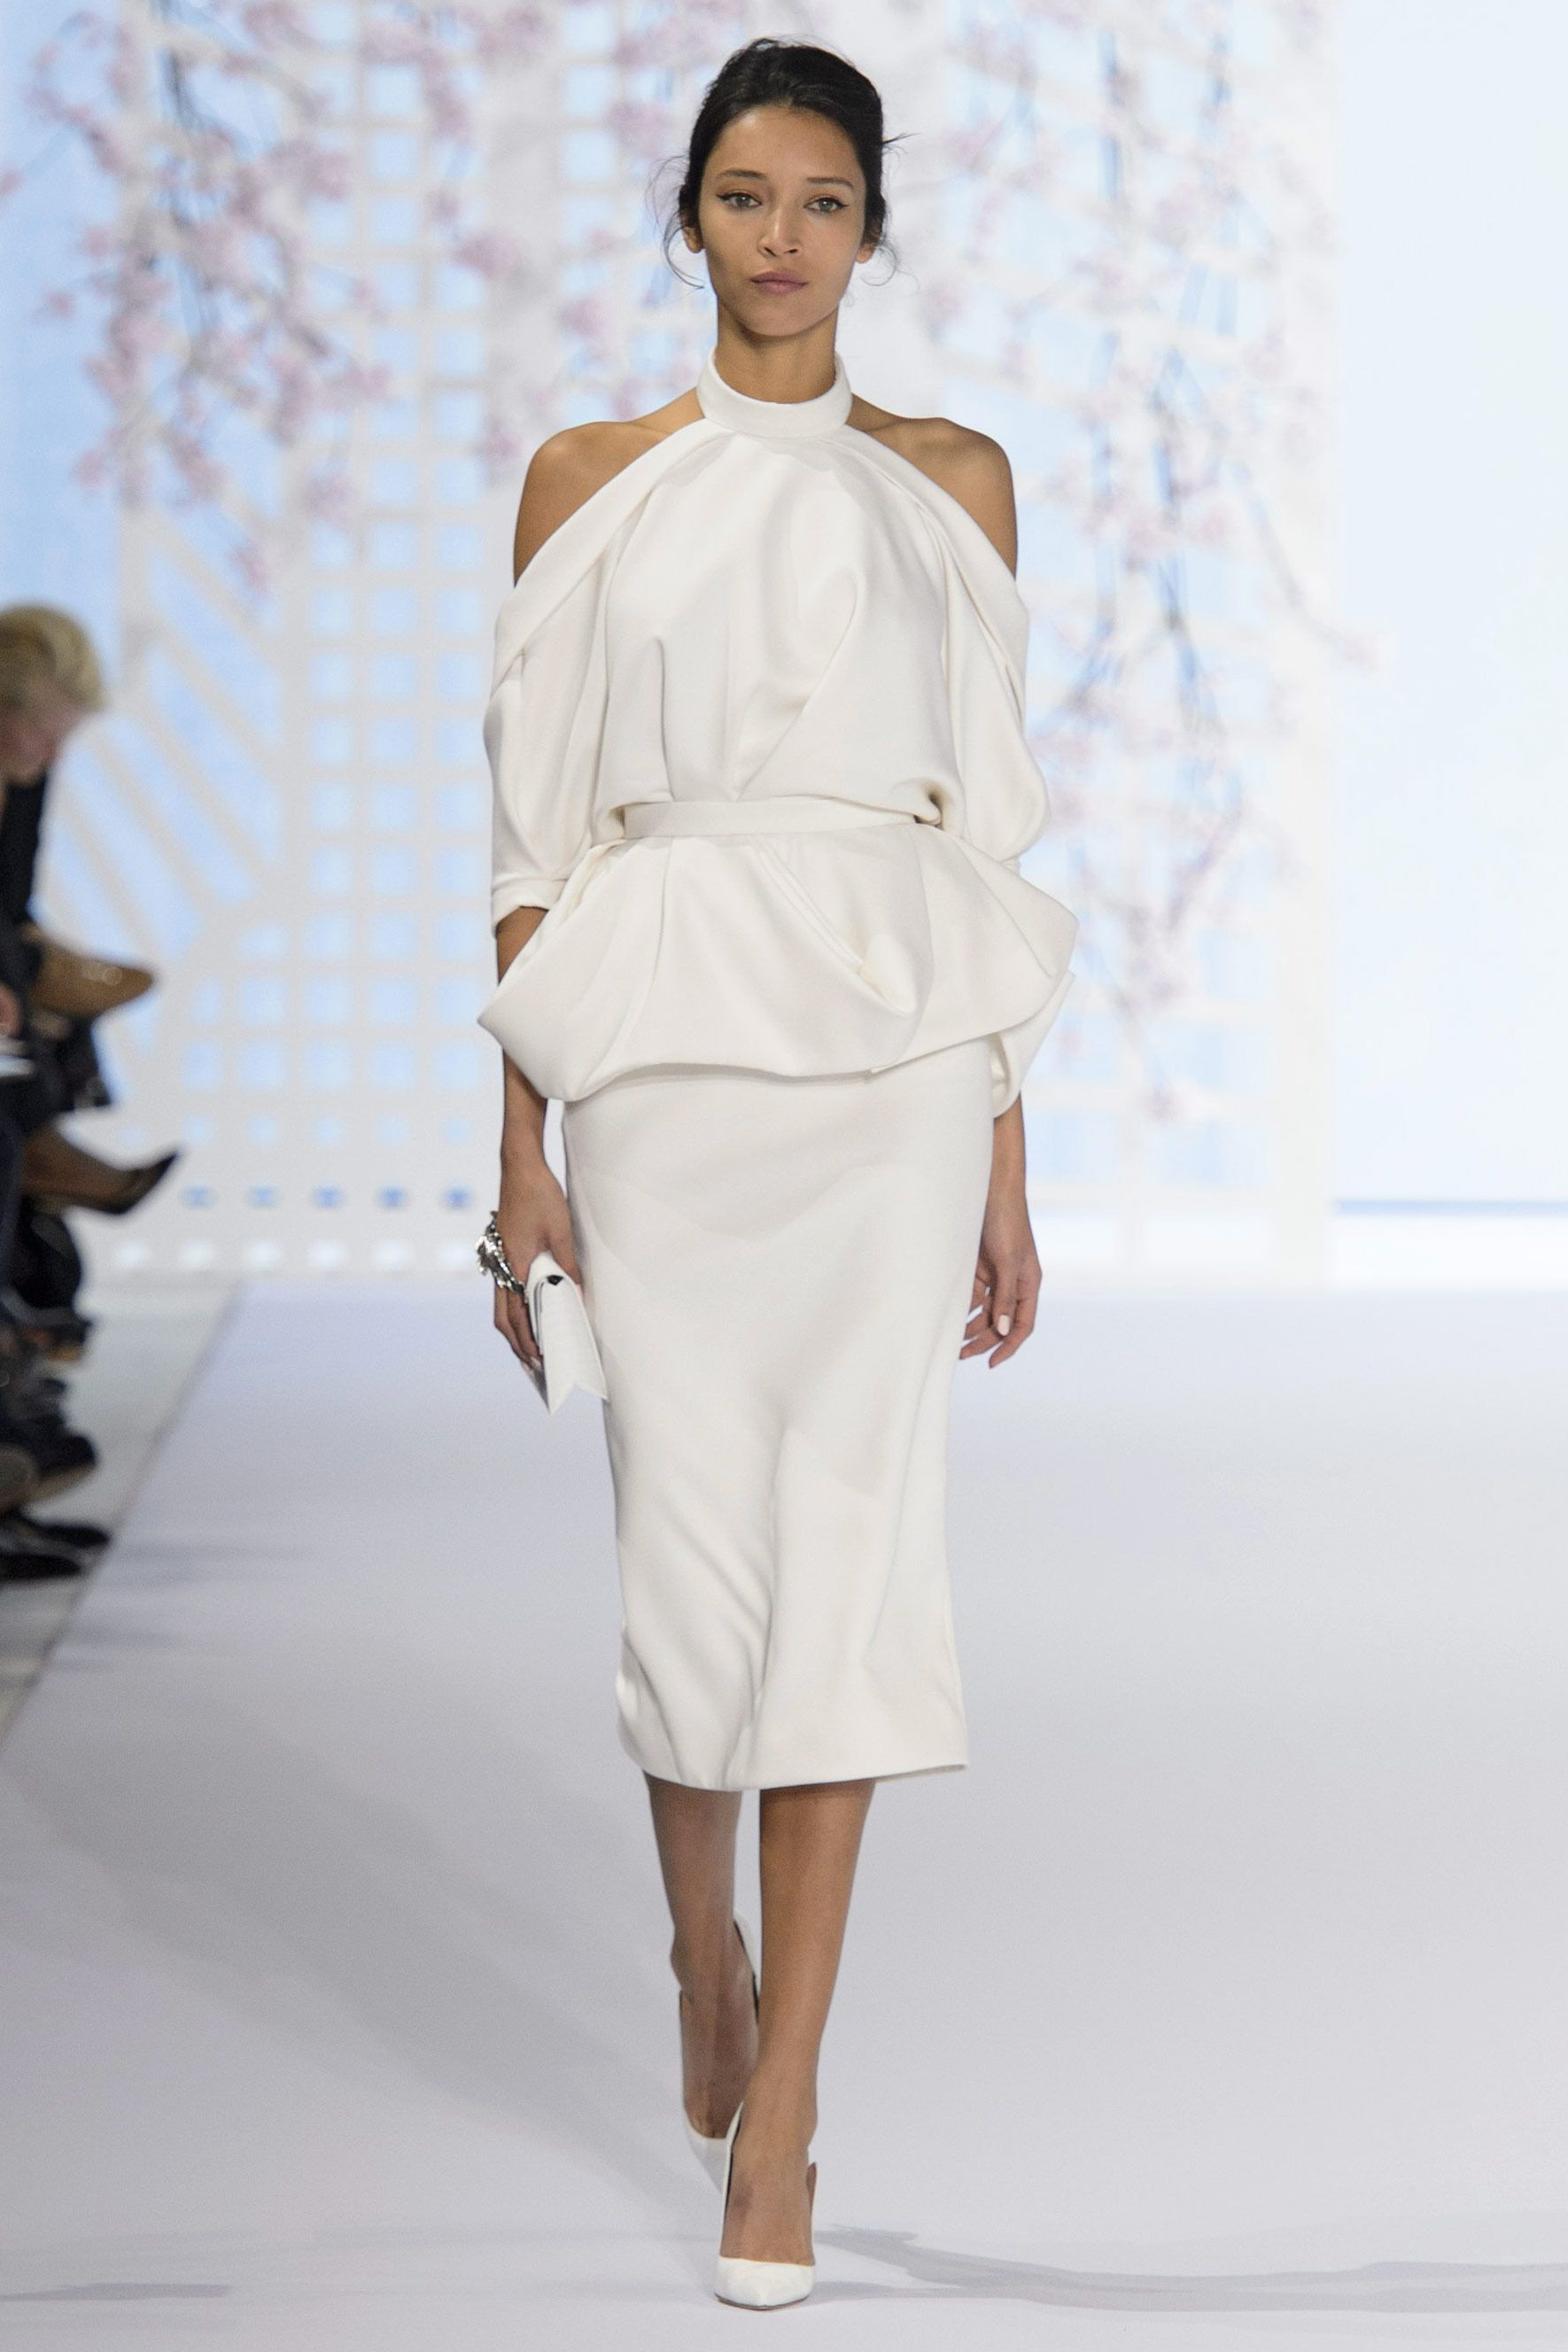 Ralph & Russo Haute Couture Spring 2016 collection